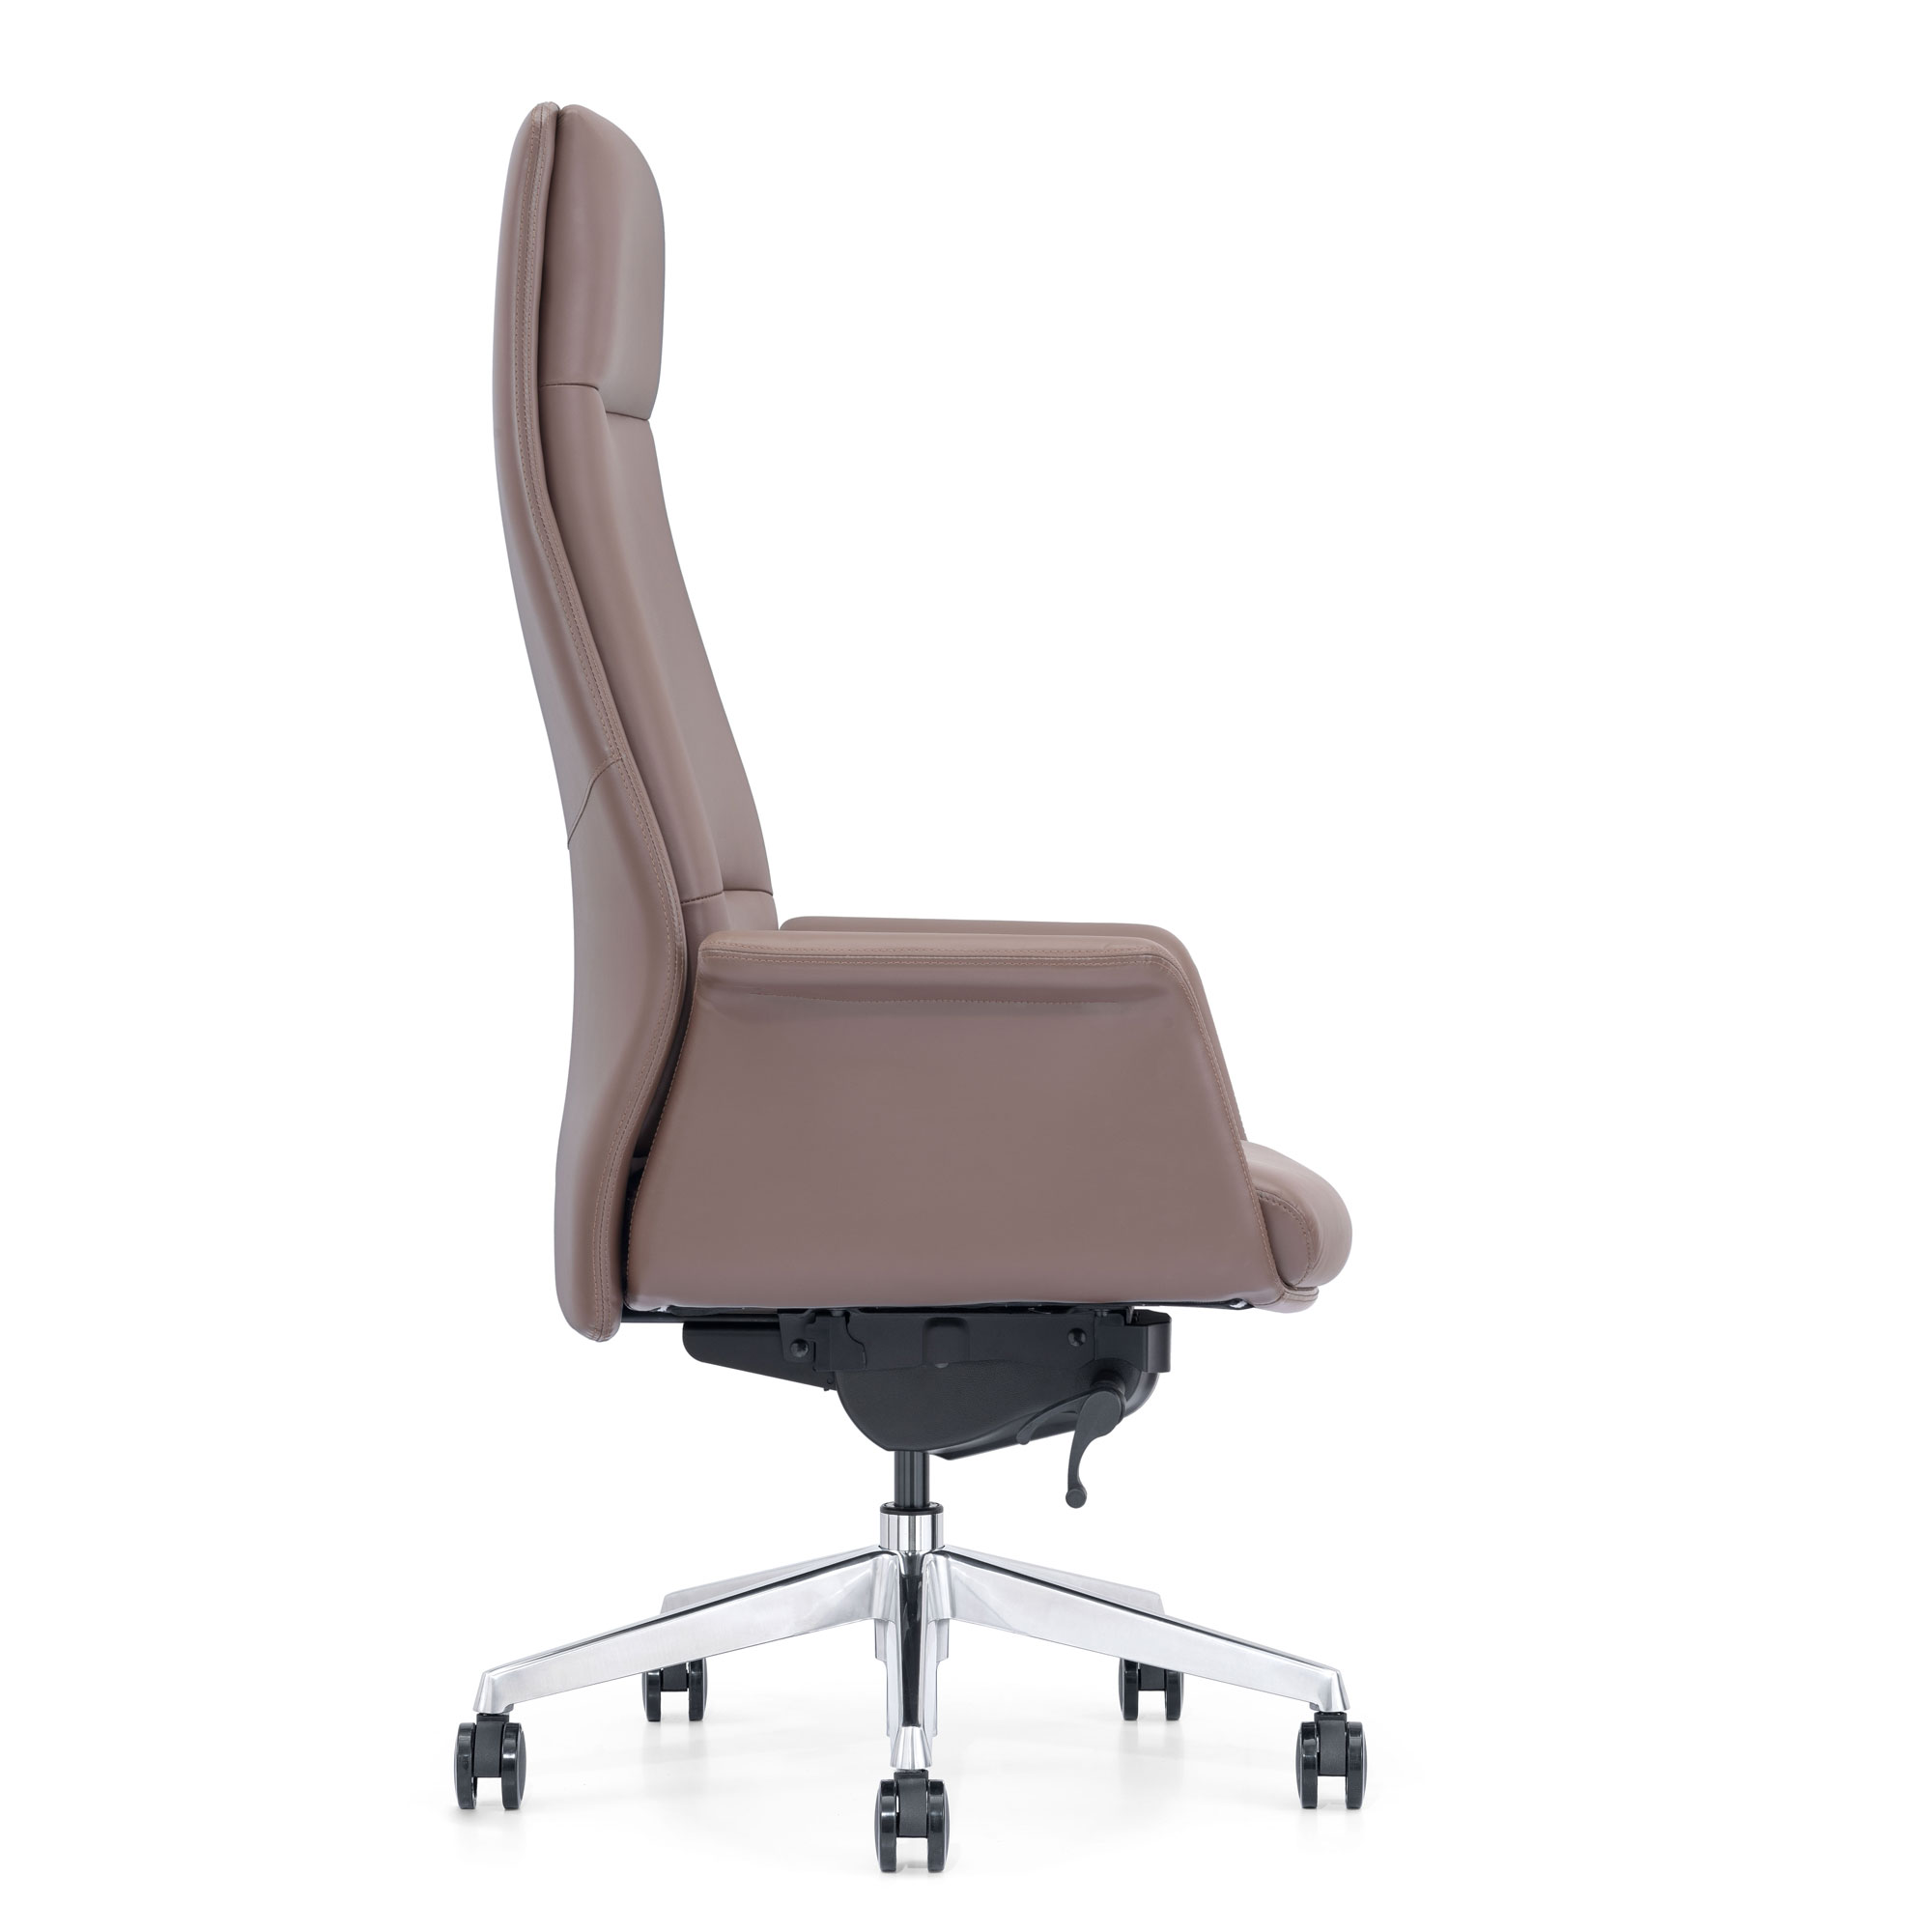 Brown Leather High-Back Chair, Side View